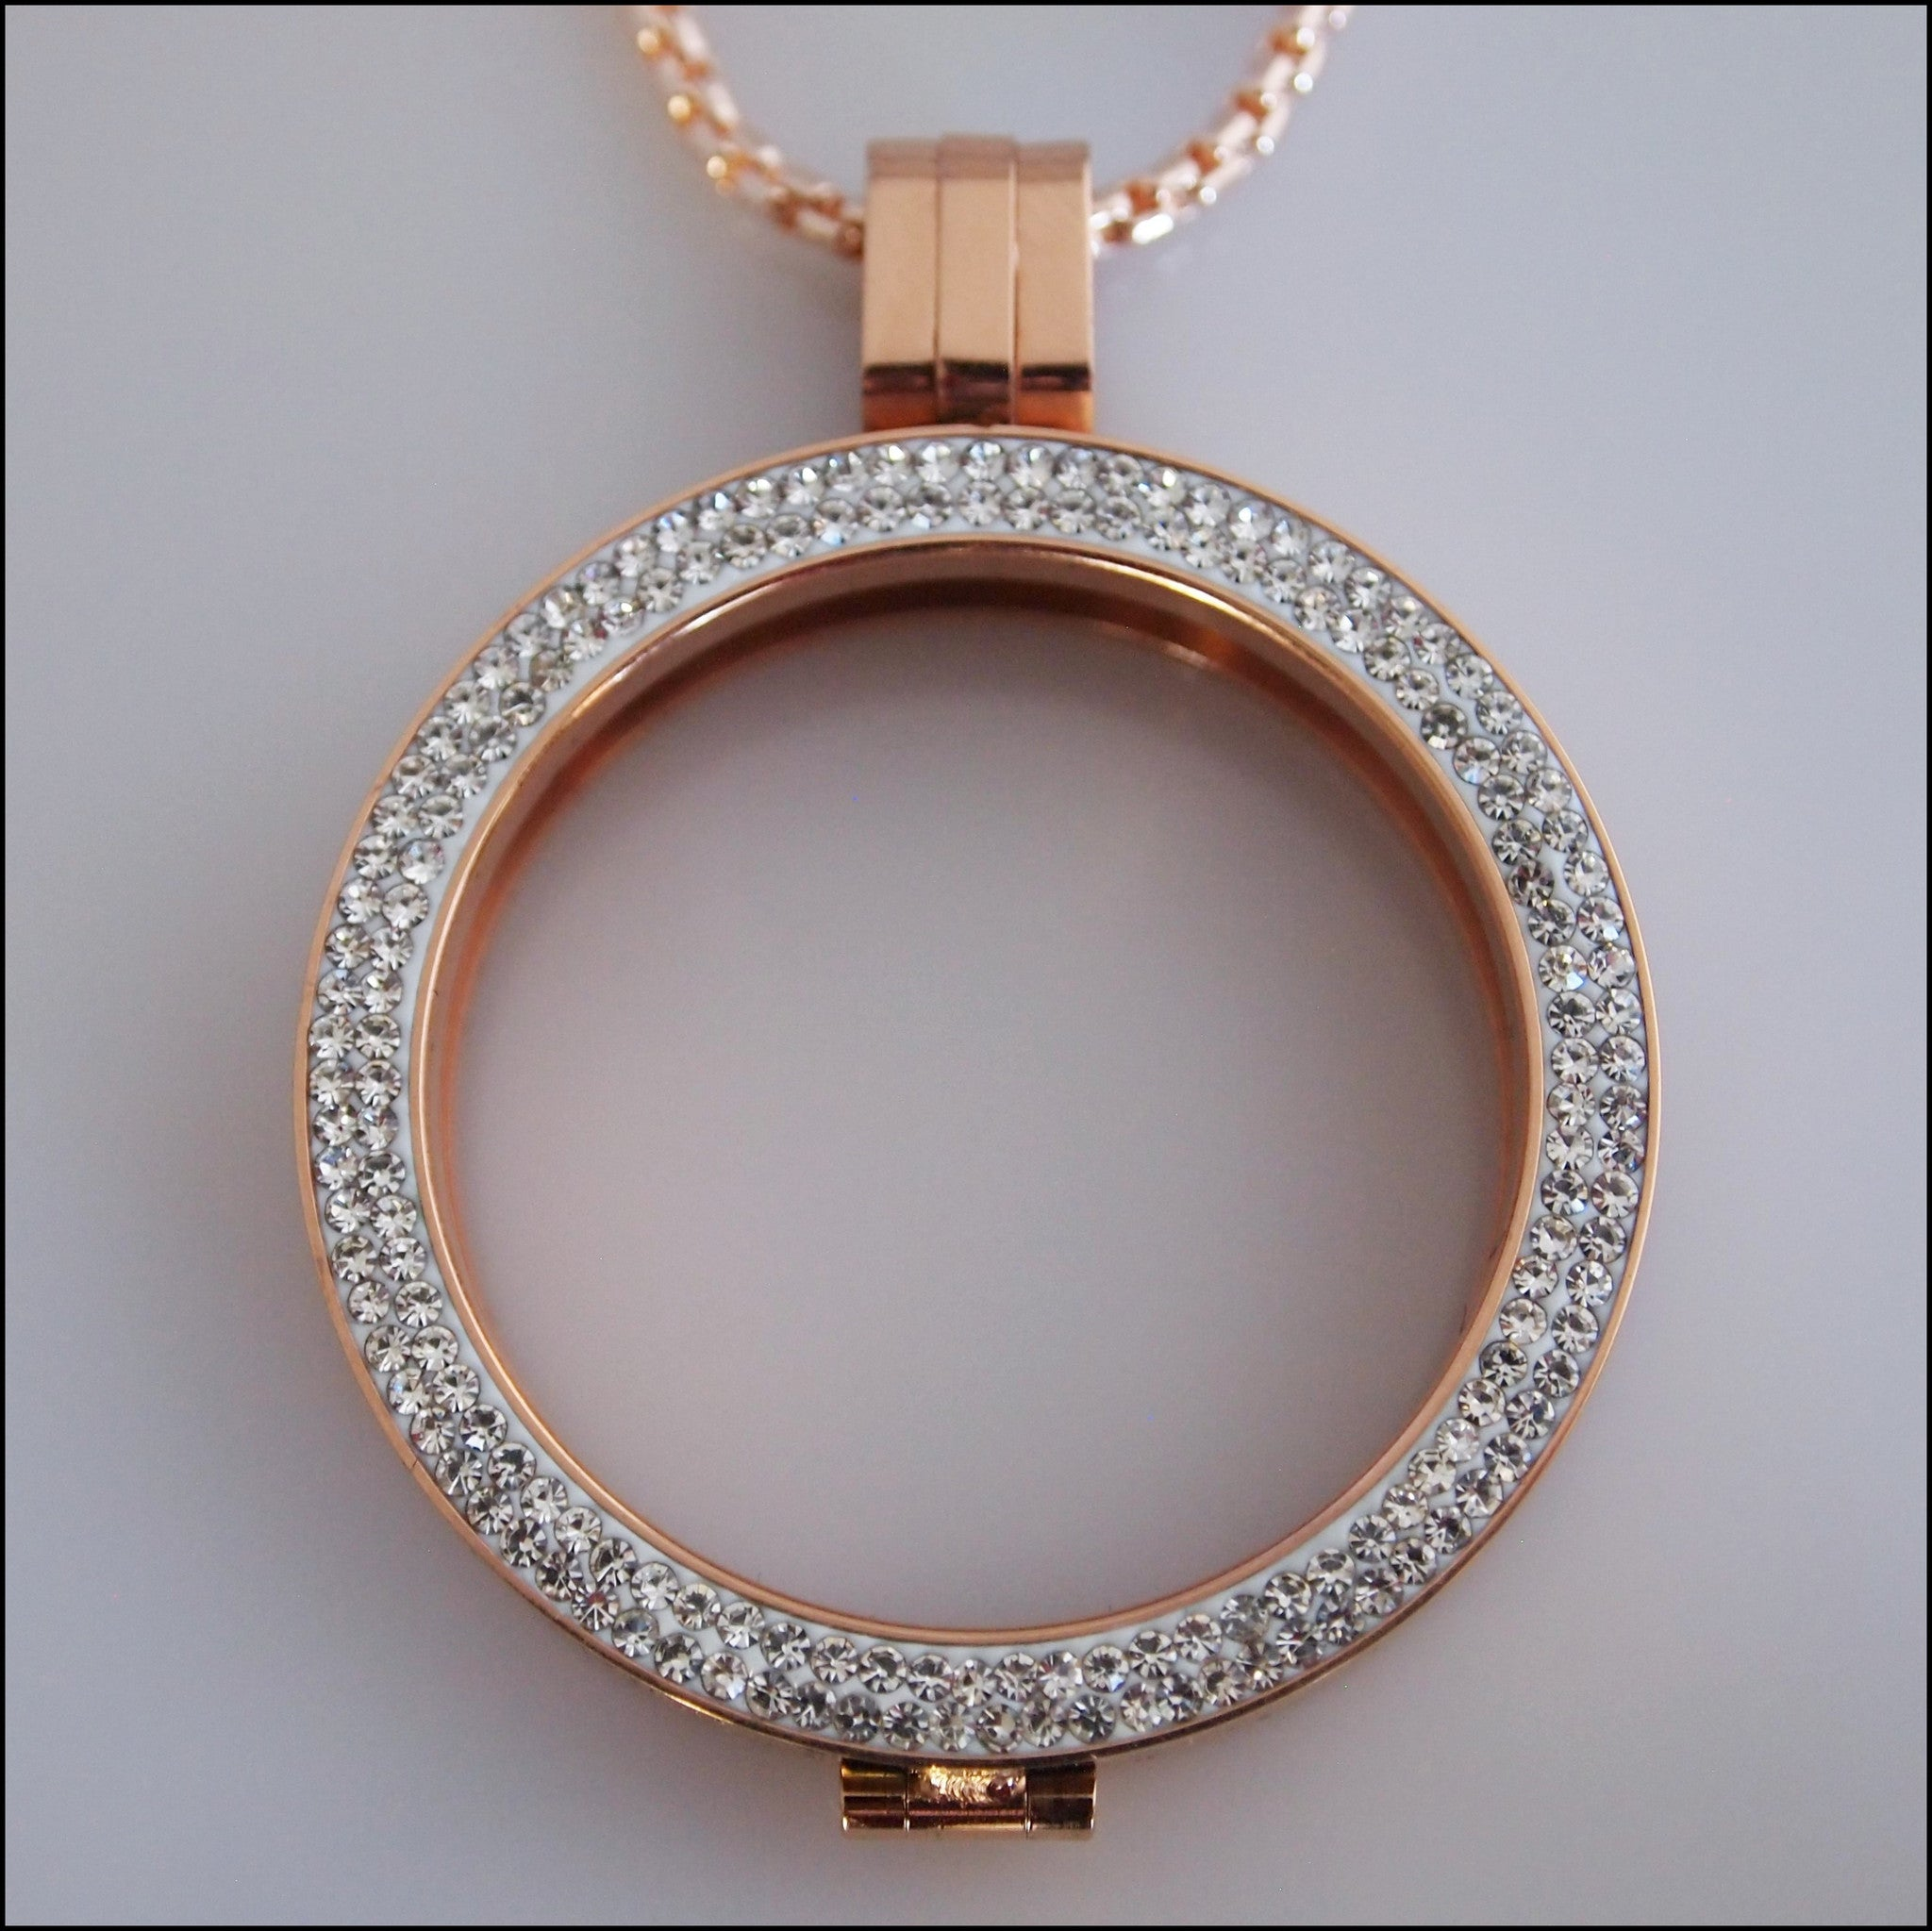 Double Crystal Coin Holder Pendant - Rose Gold - Find Something Special